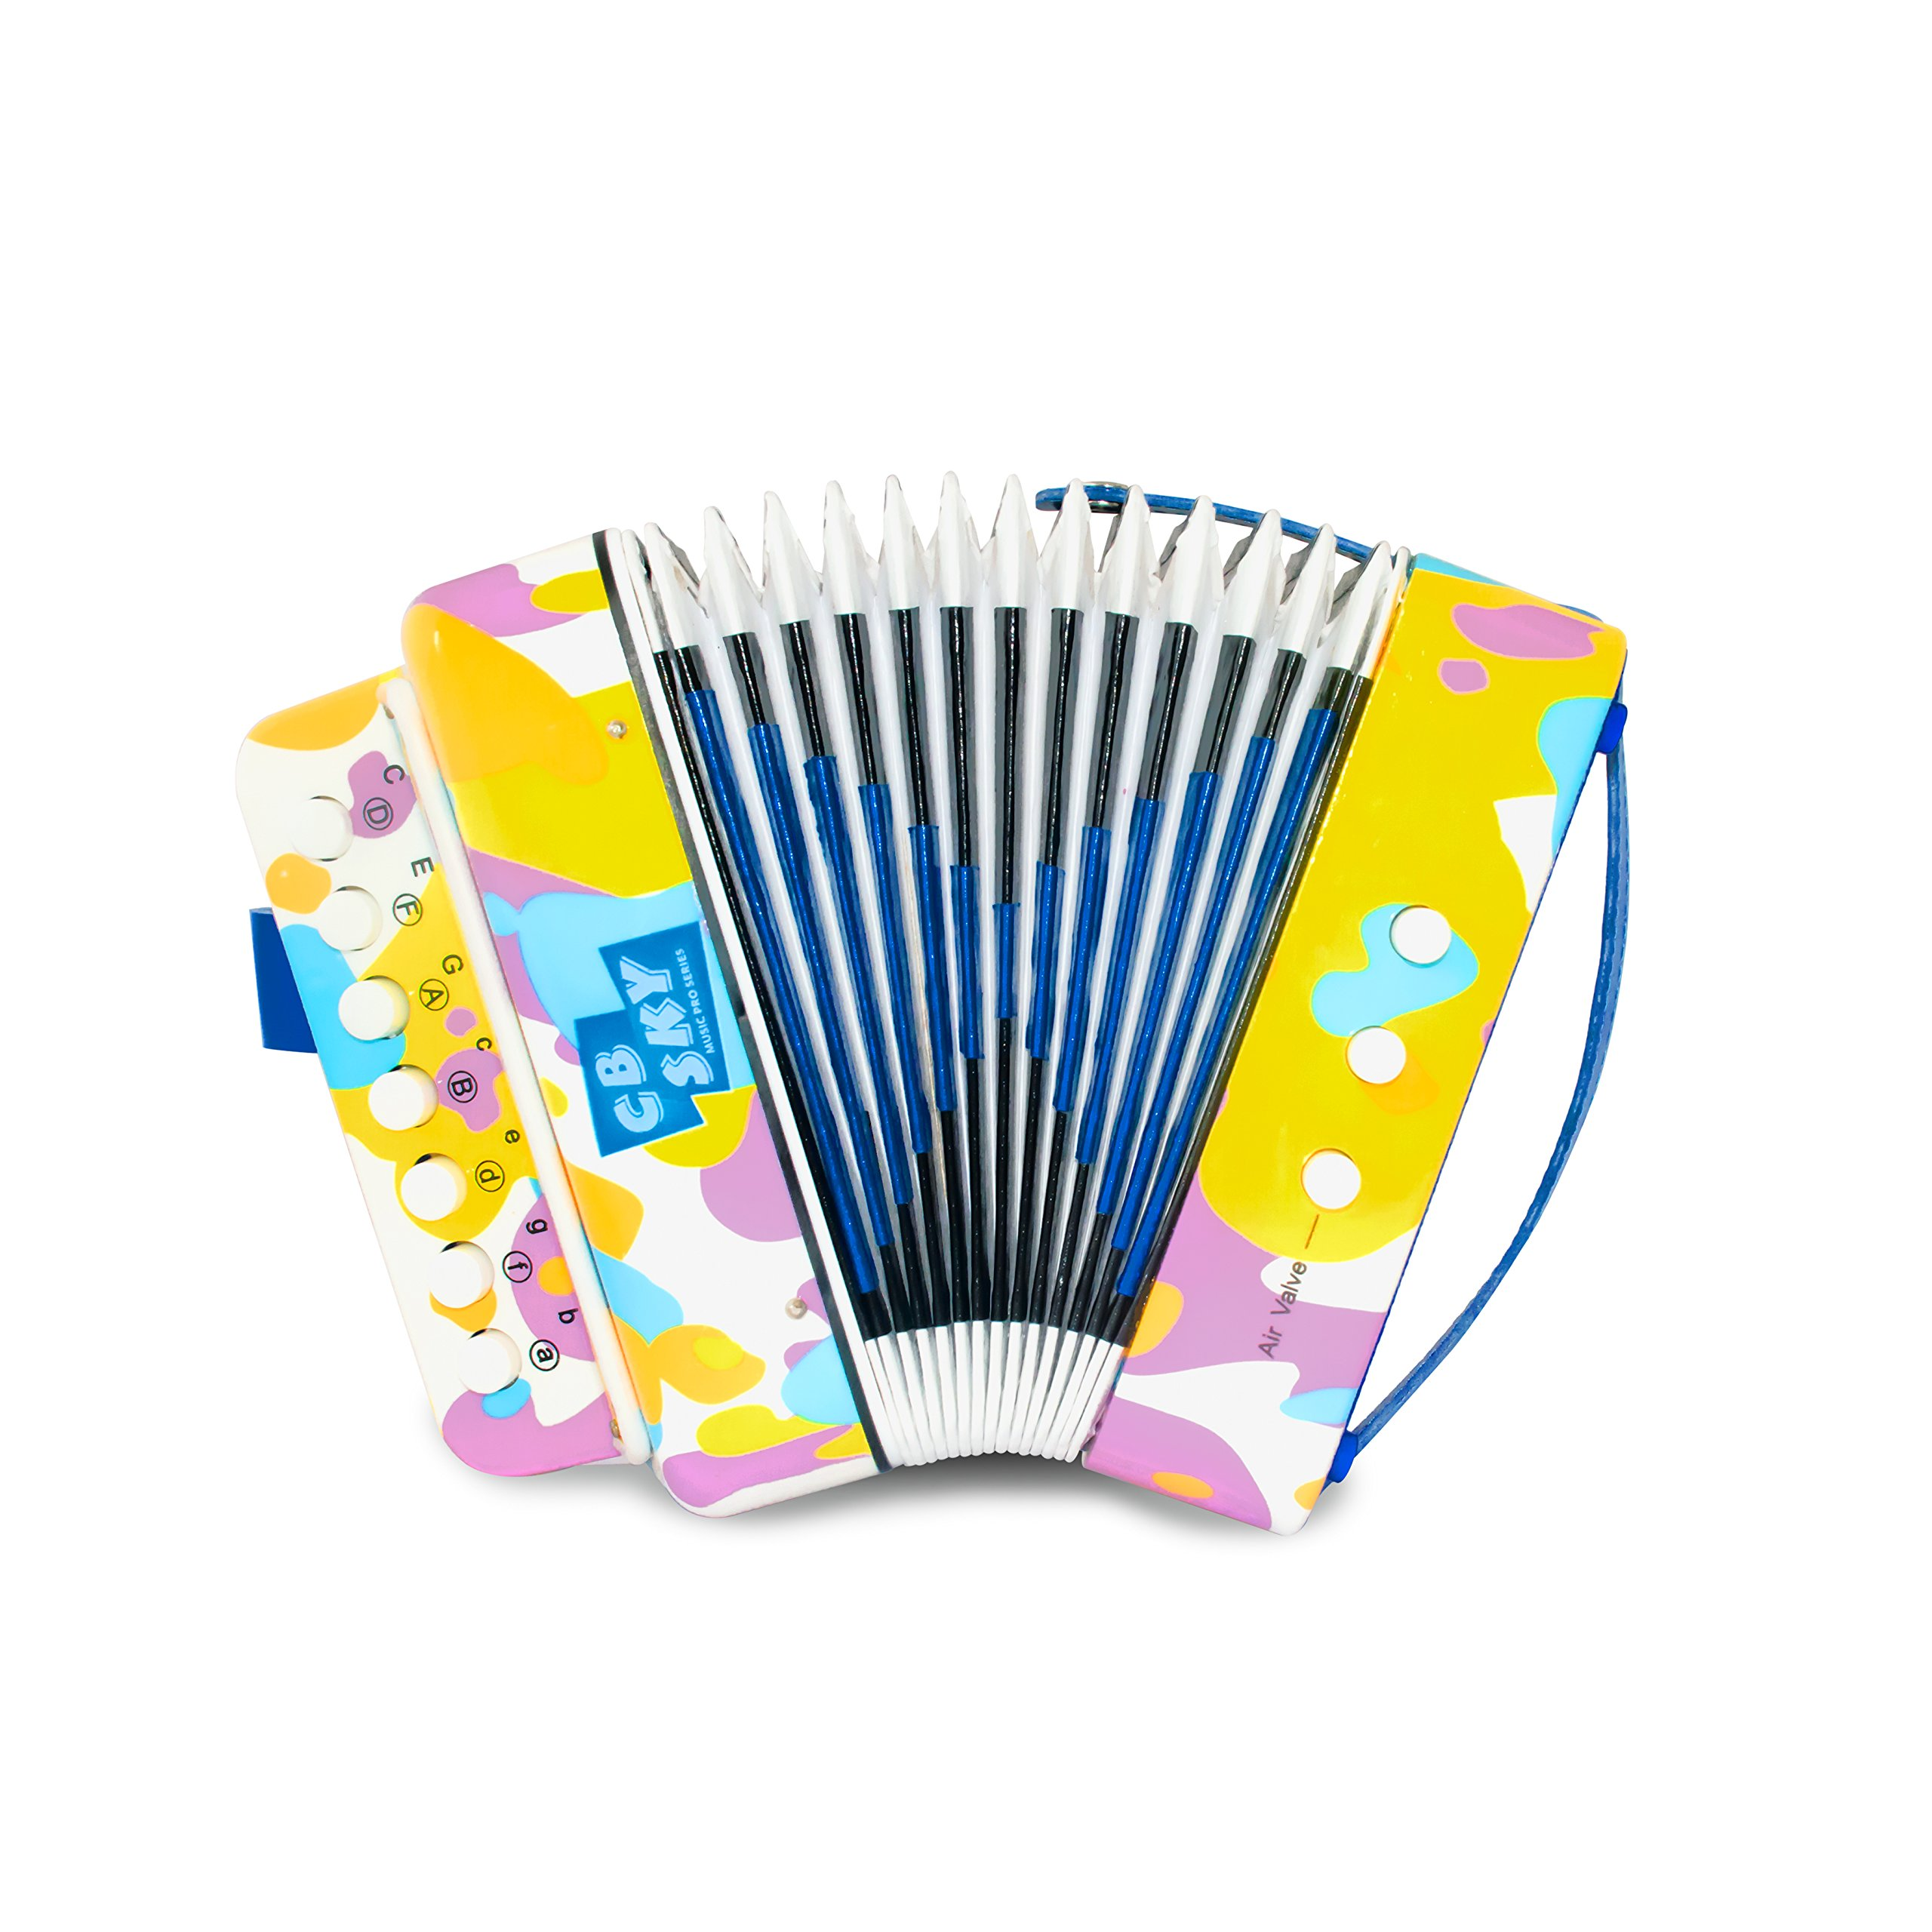 CB SKY Kids' Accordion / Kids Musical Instrument / Musical Toys(Y)